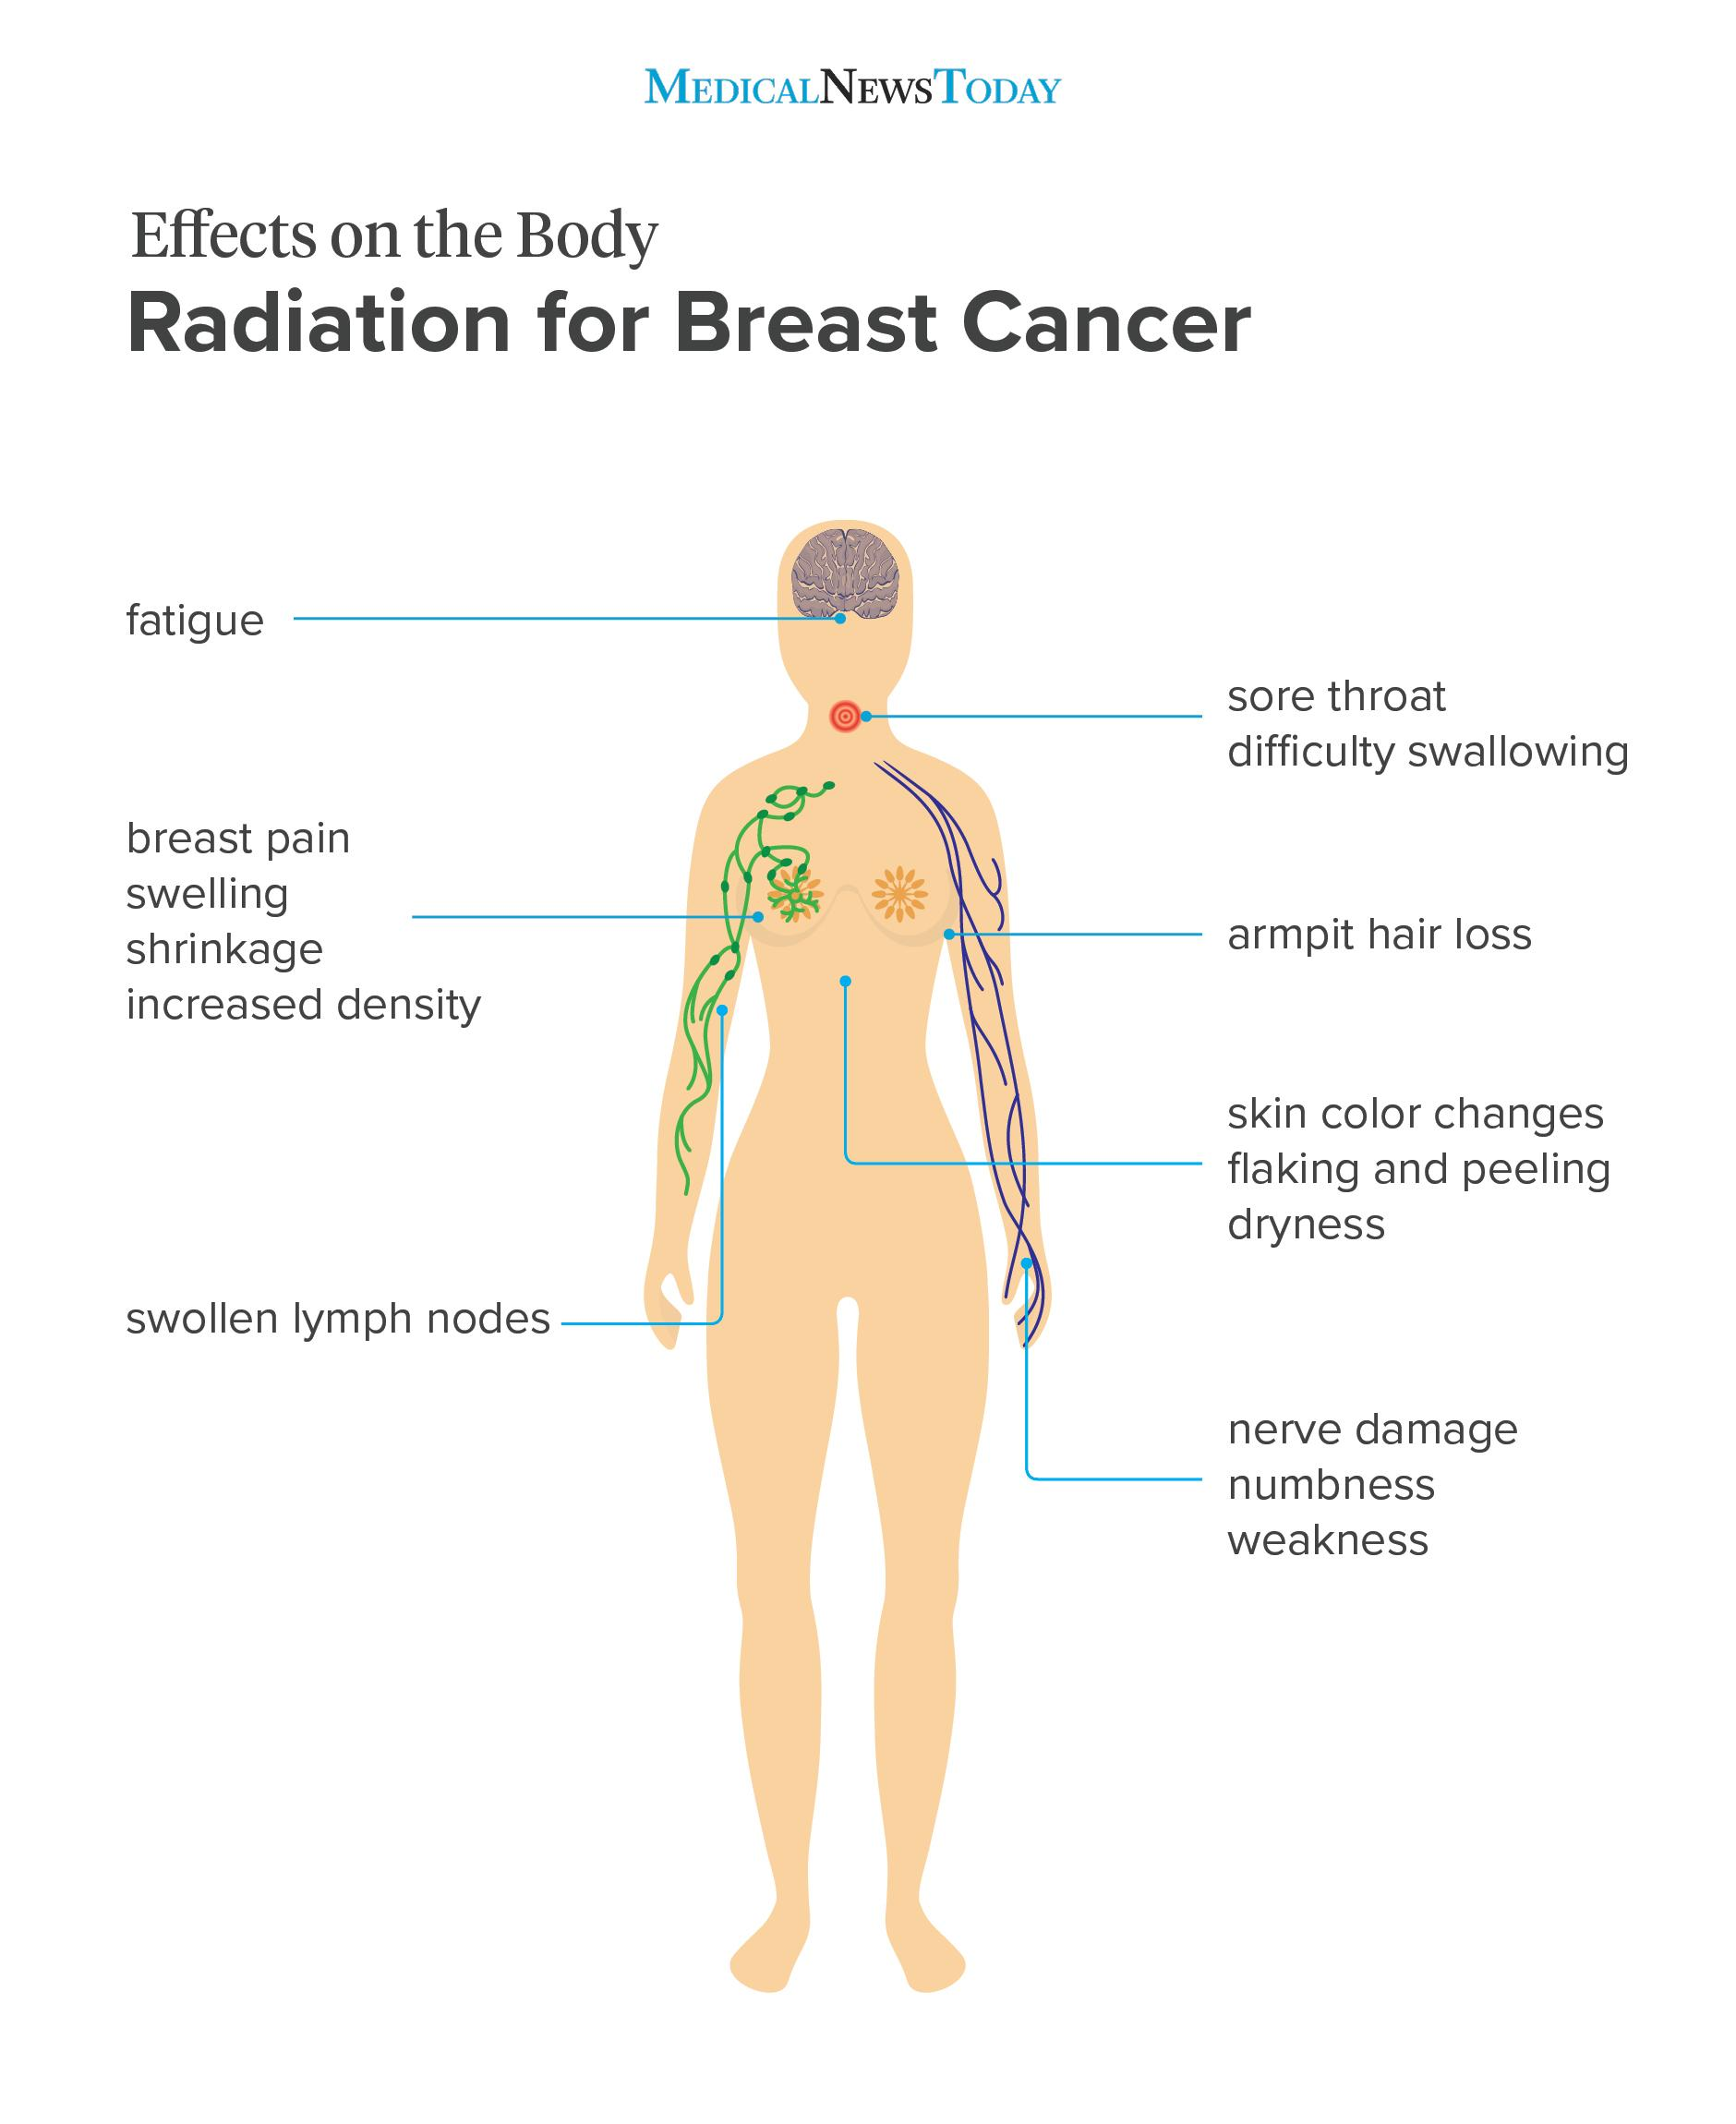 Radiation for breast cancer infographic <br>Image credit: Stephen kelly, 2018</br>